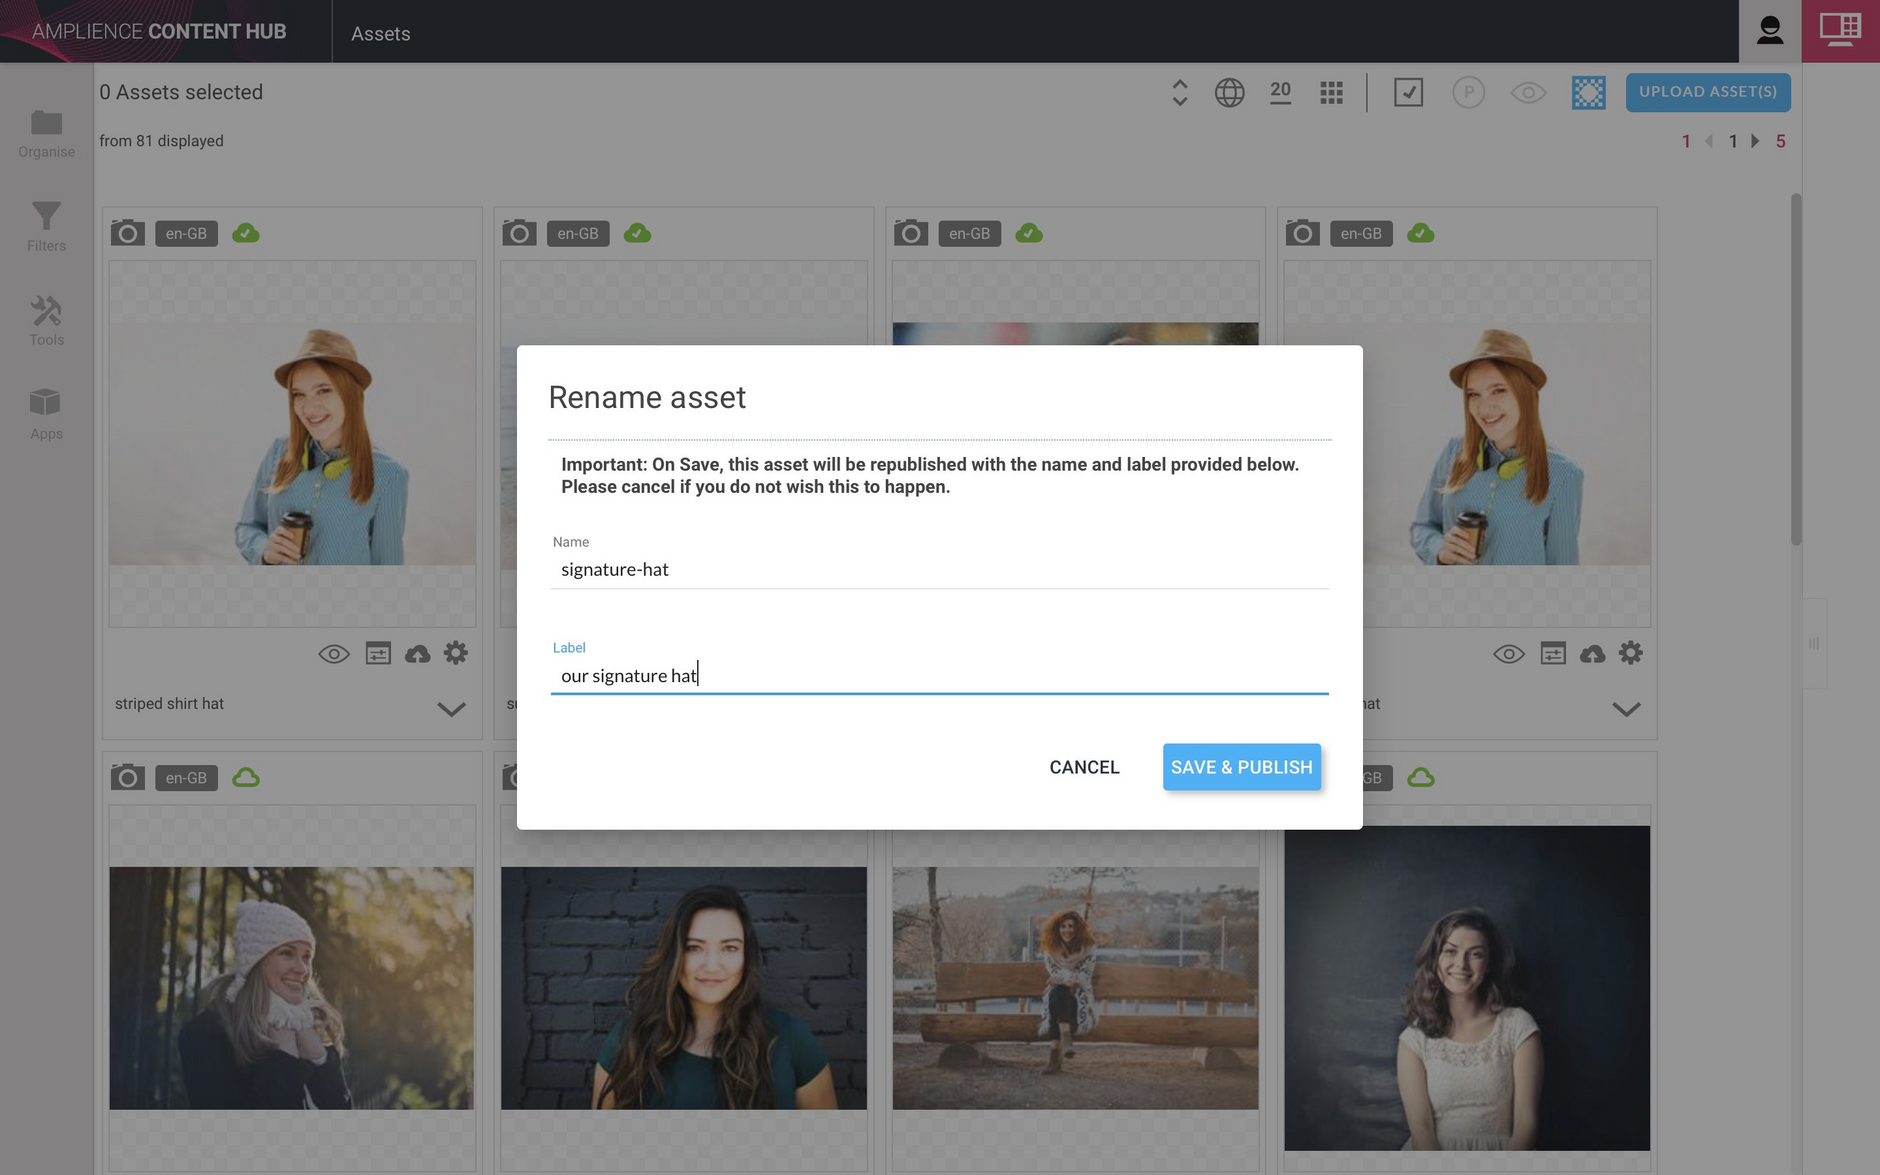 You can enter a new name and label. Click Save and publish to publish the asset with its new name